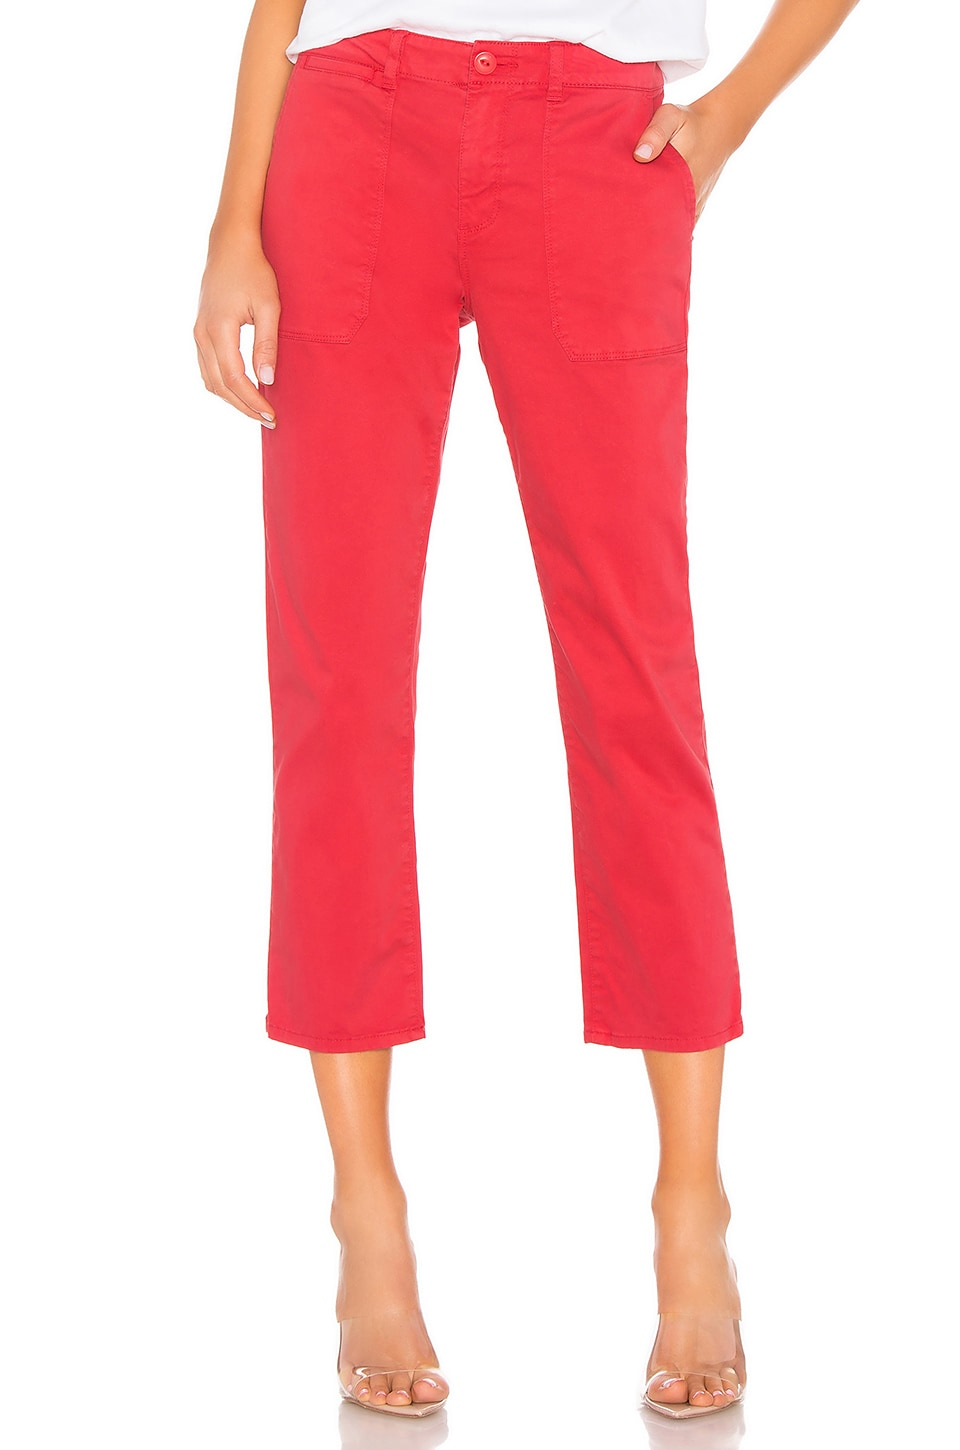 Sanctuary Peace Crop Chino Pant in Poppy Red